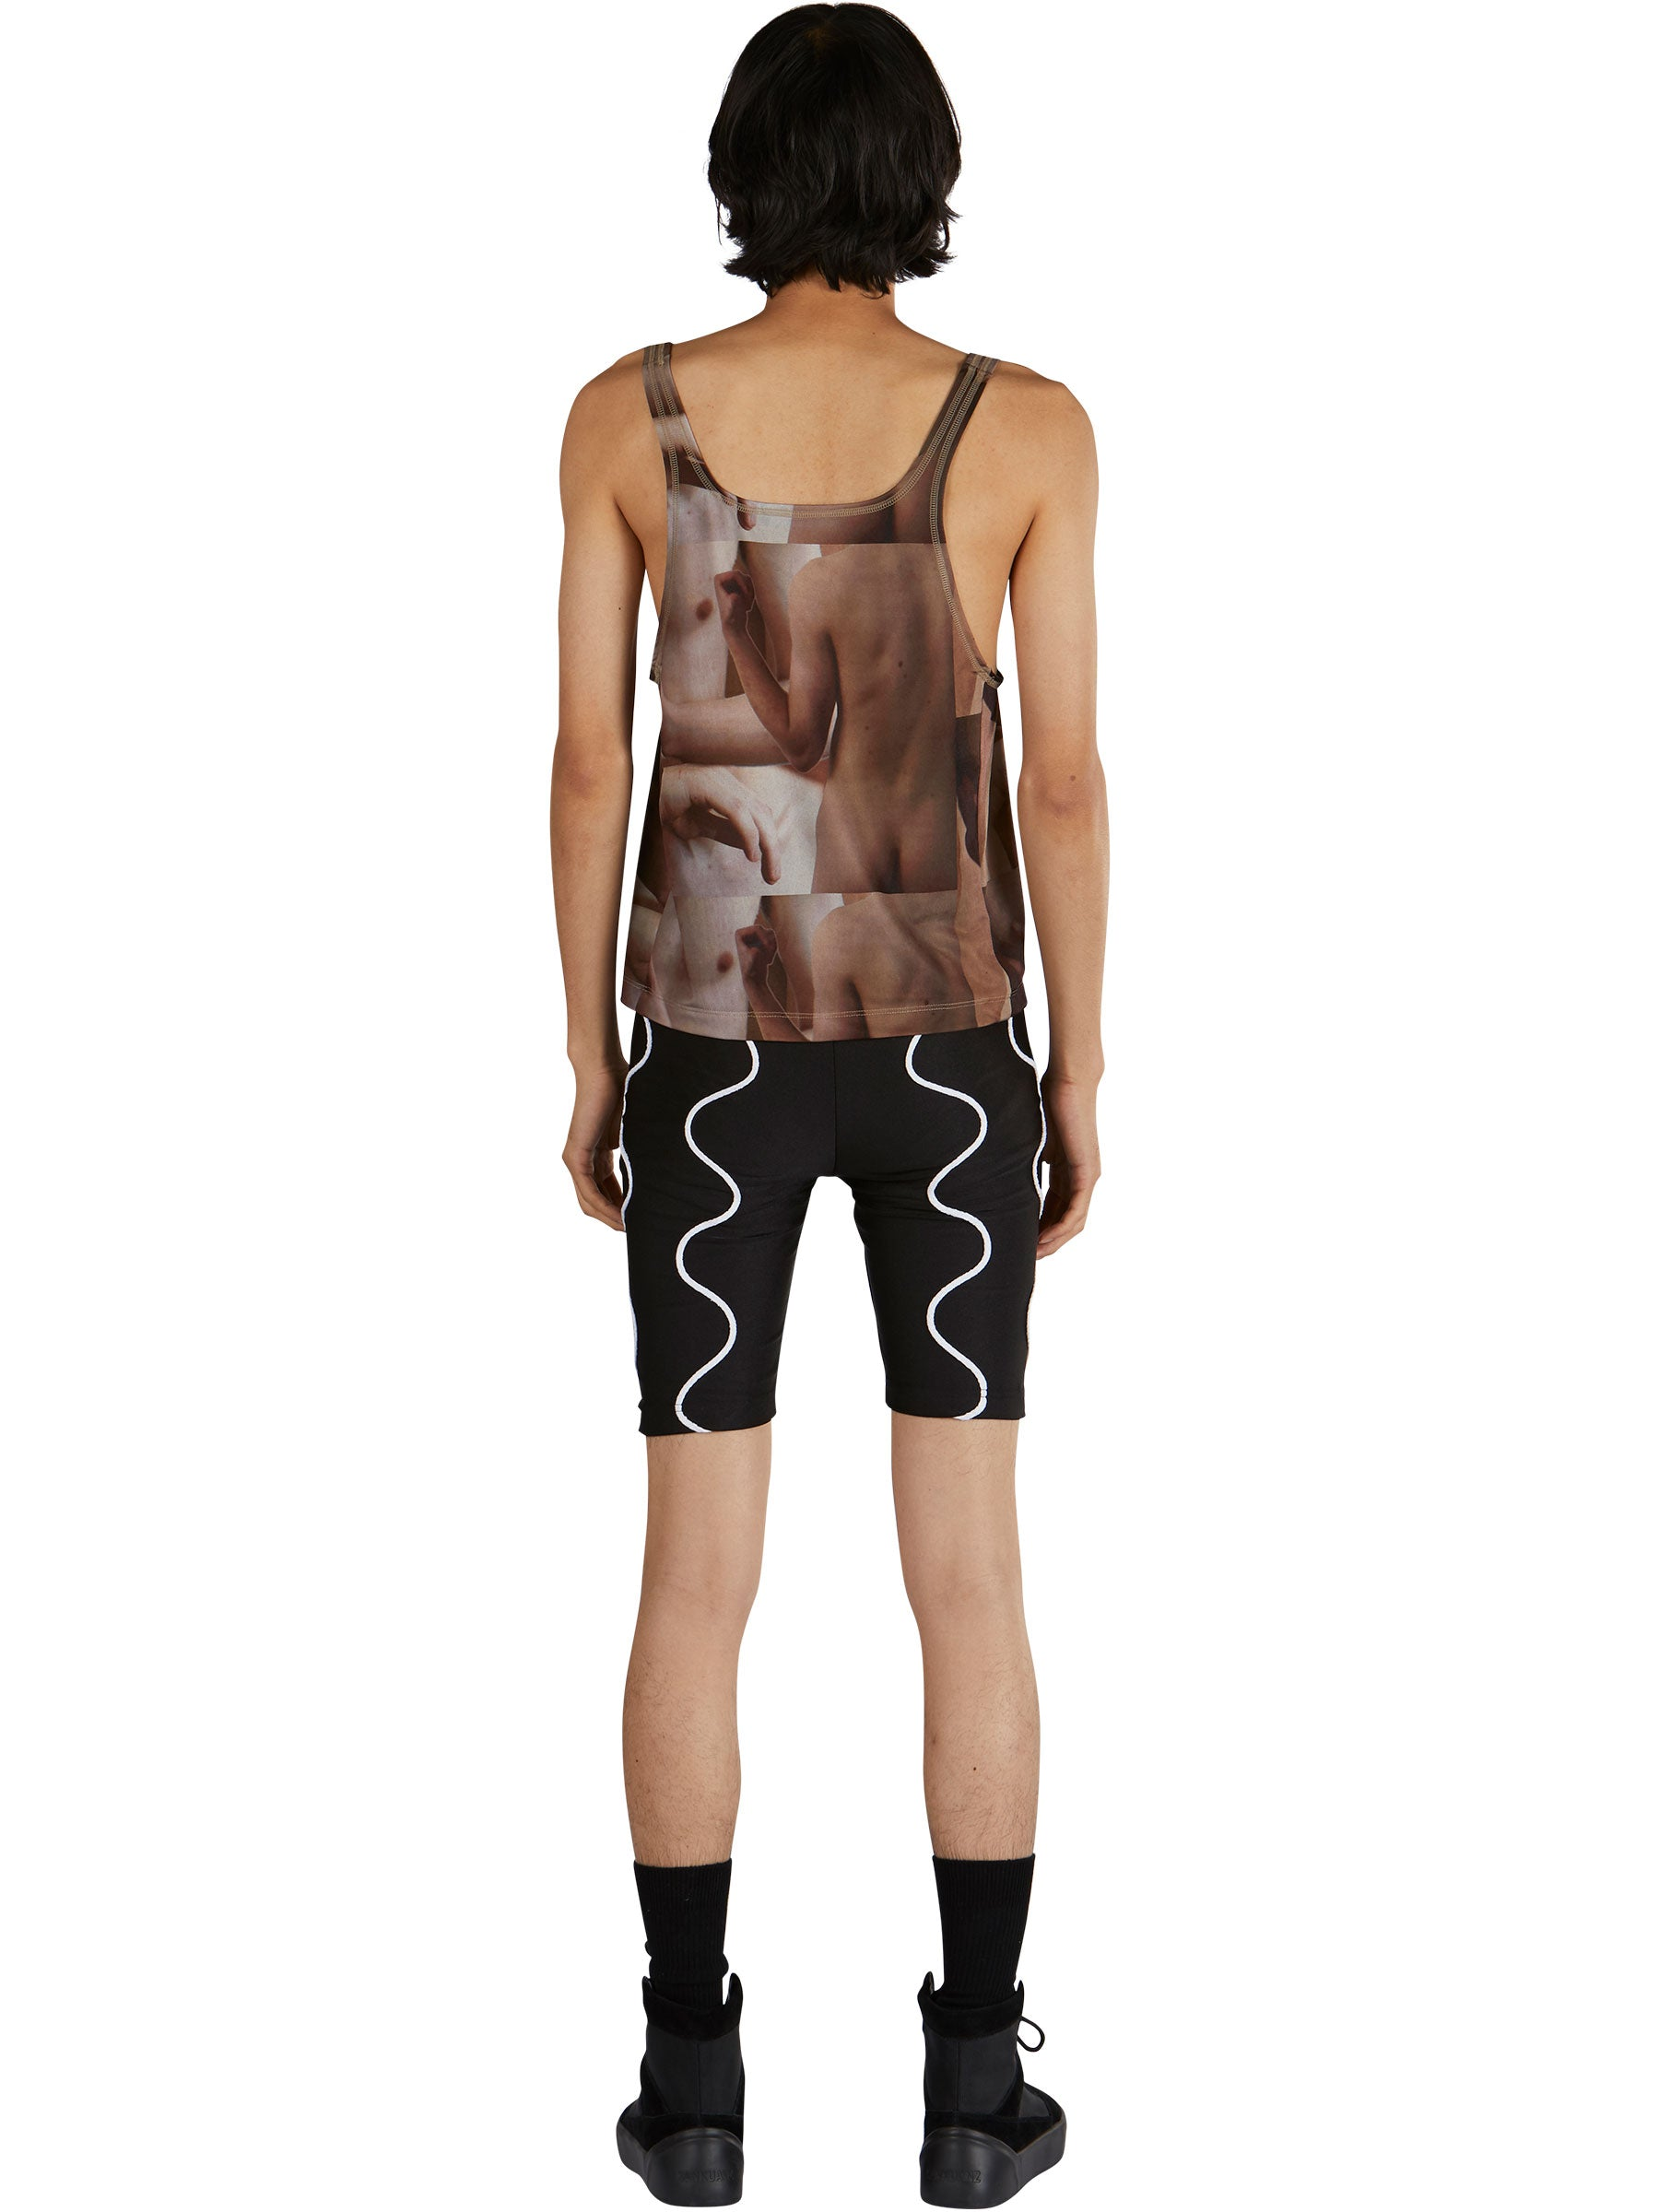 odd92 Nicola Indelicato Nude Print Wrestler Top Fall/Winter 2019 Menswear - 4